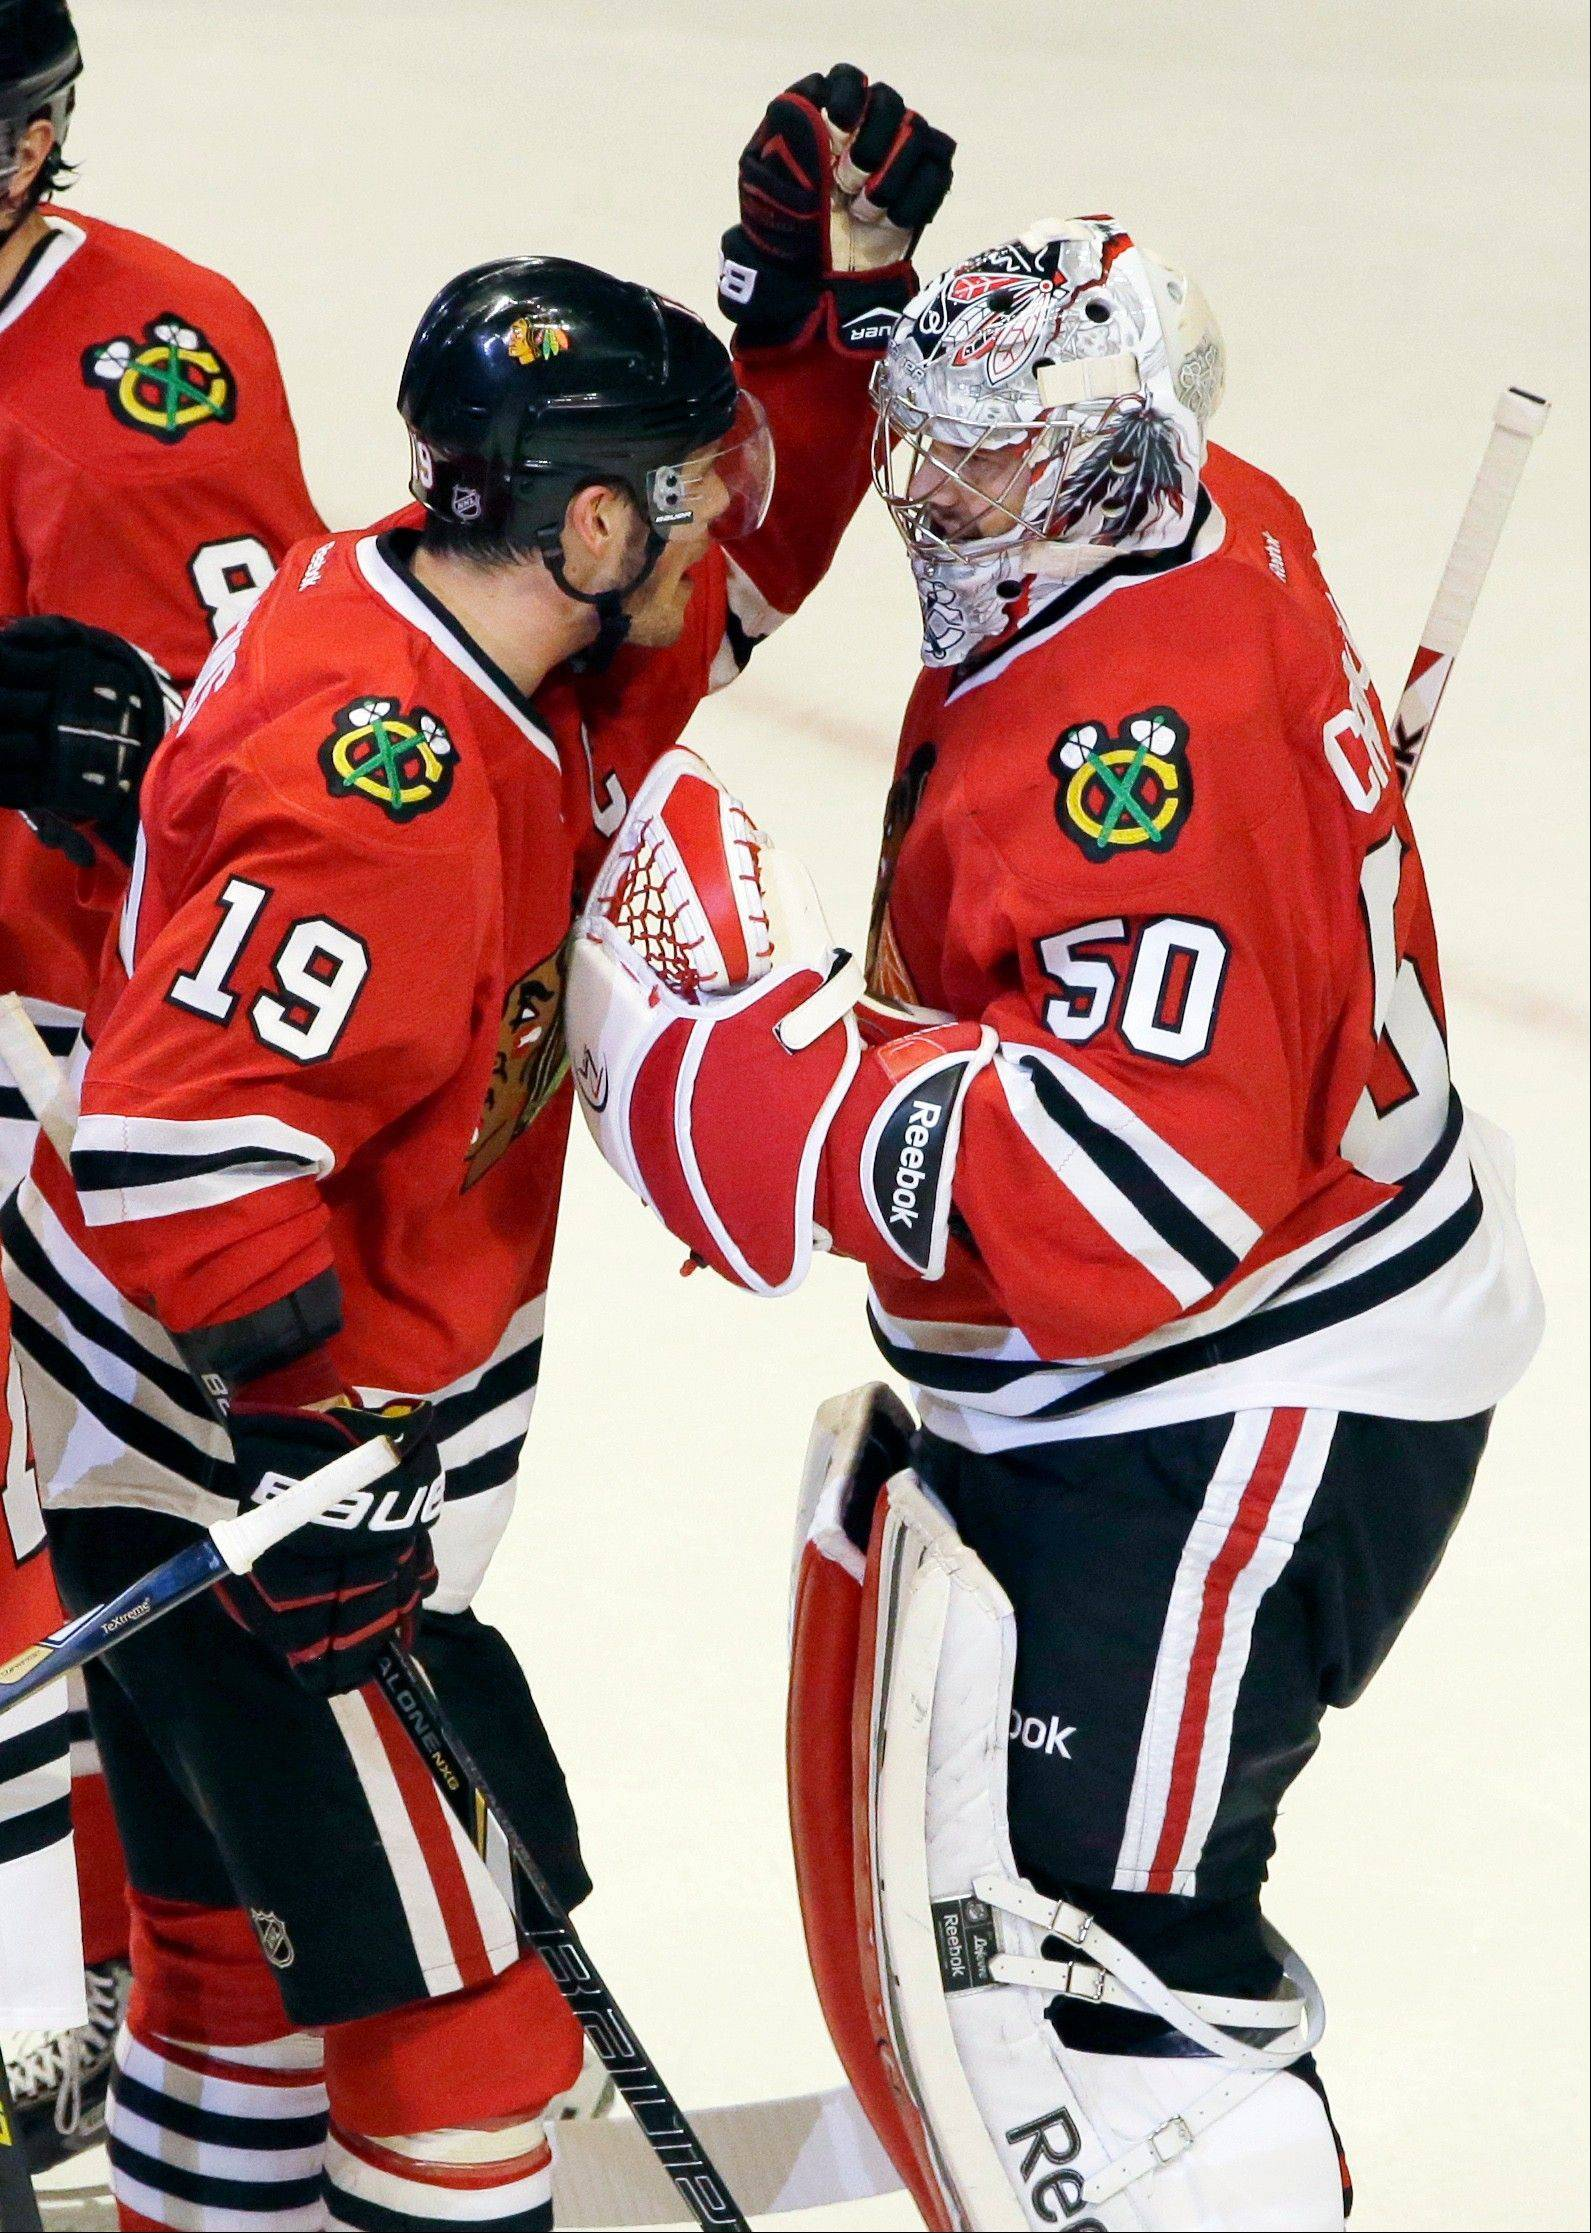 Blackhawks goalie Corey Crawford celebrates with Jonathan Toews after the Blackhawks defeated the Minnesota Wild 5-1 in Game 5 on Thursday night. The Hawks won the series 4-1.